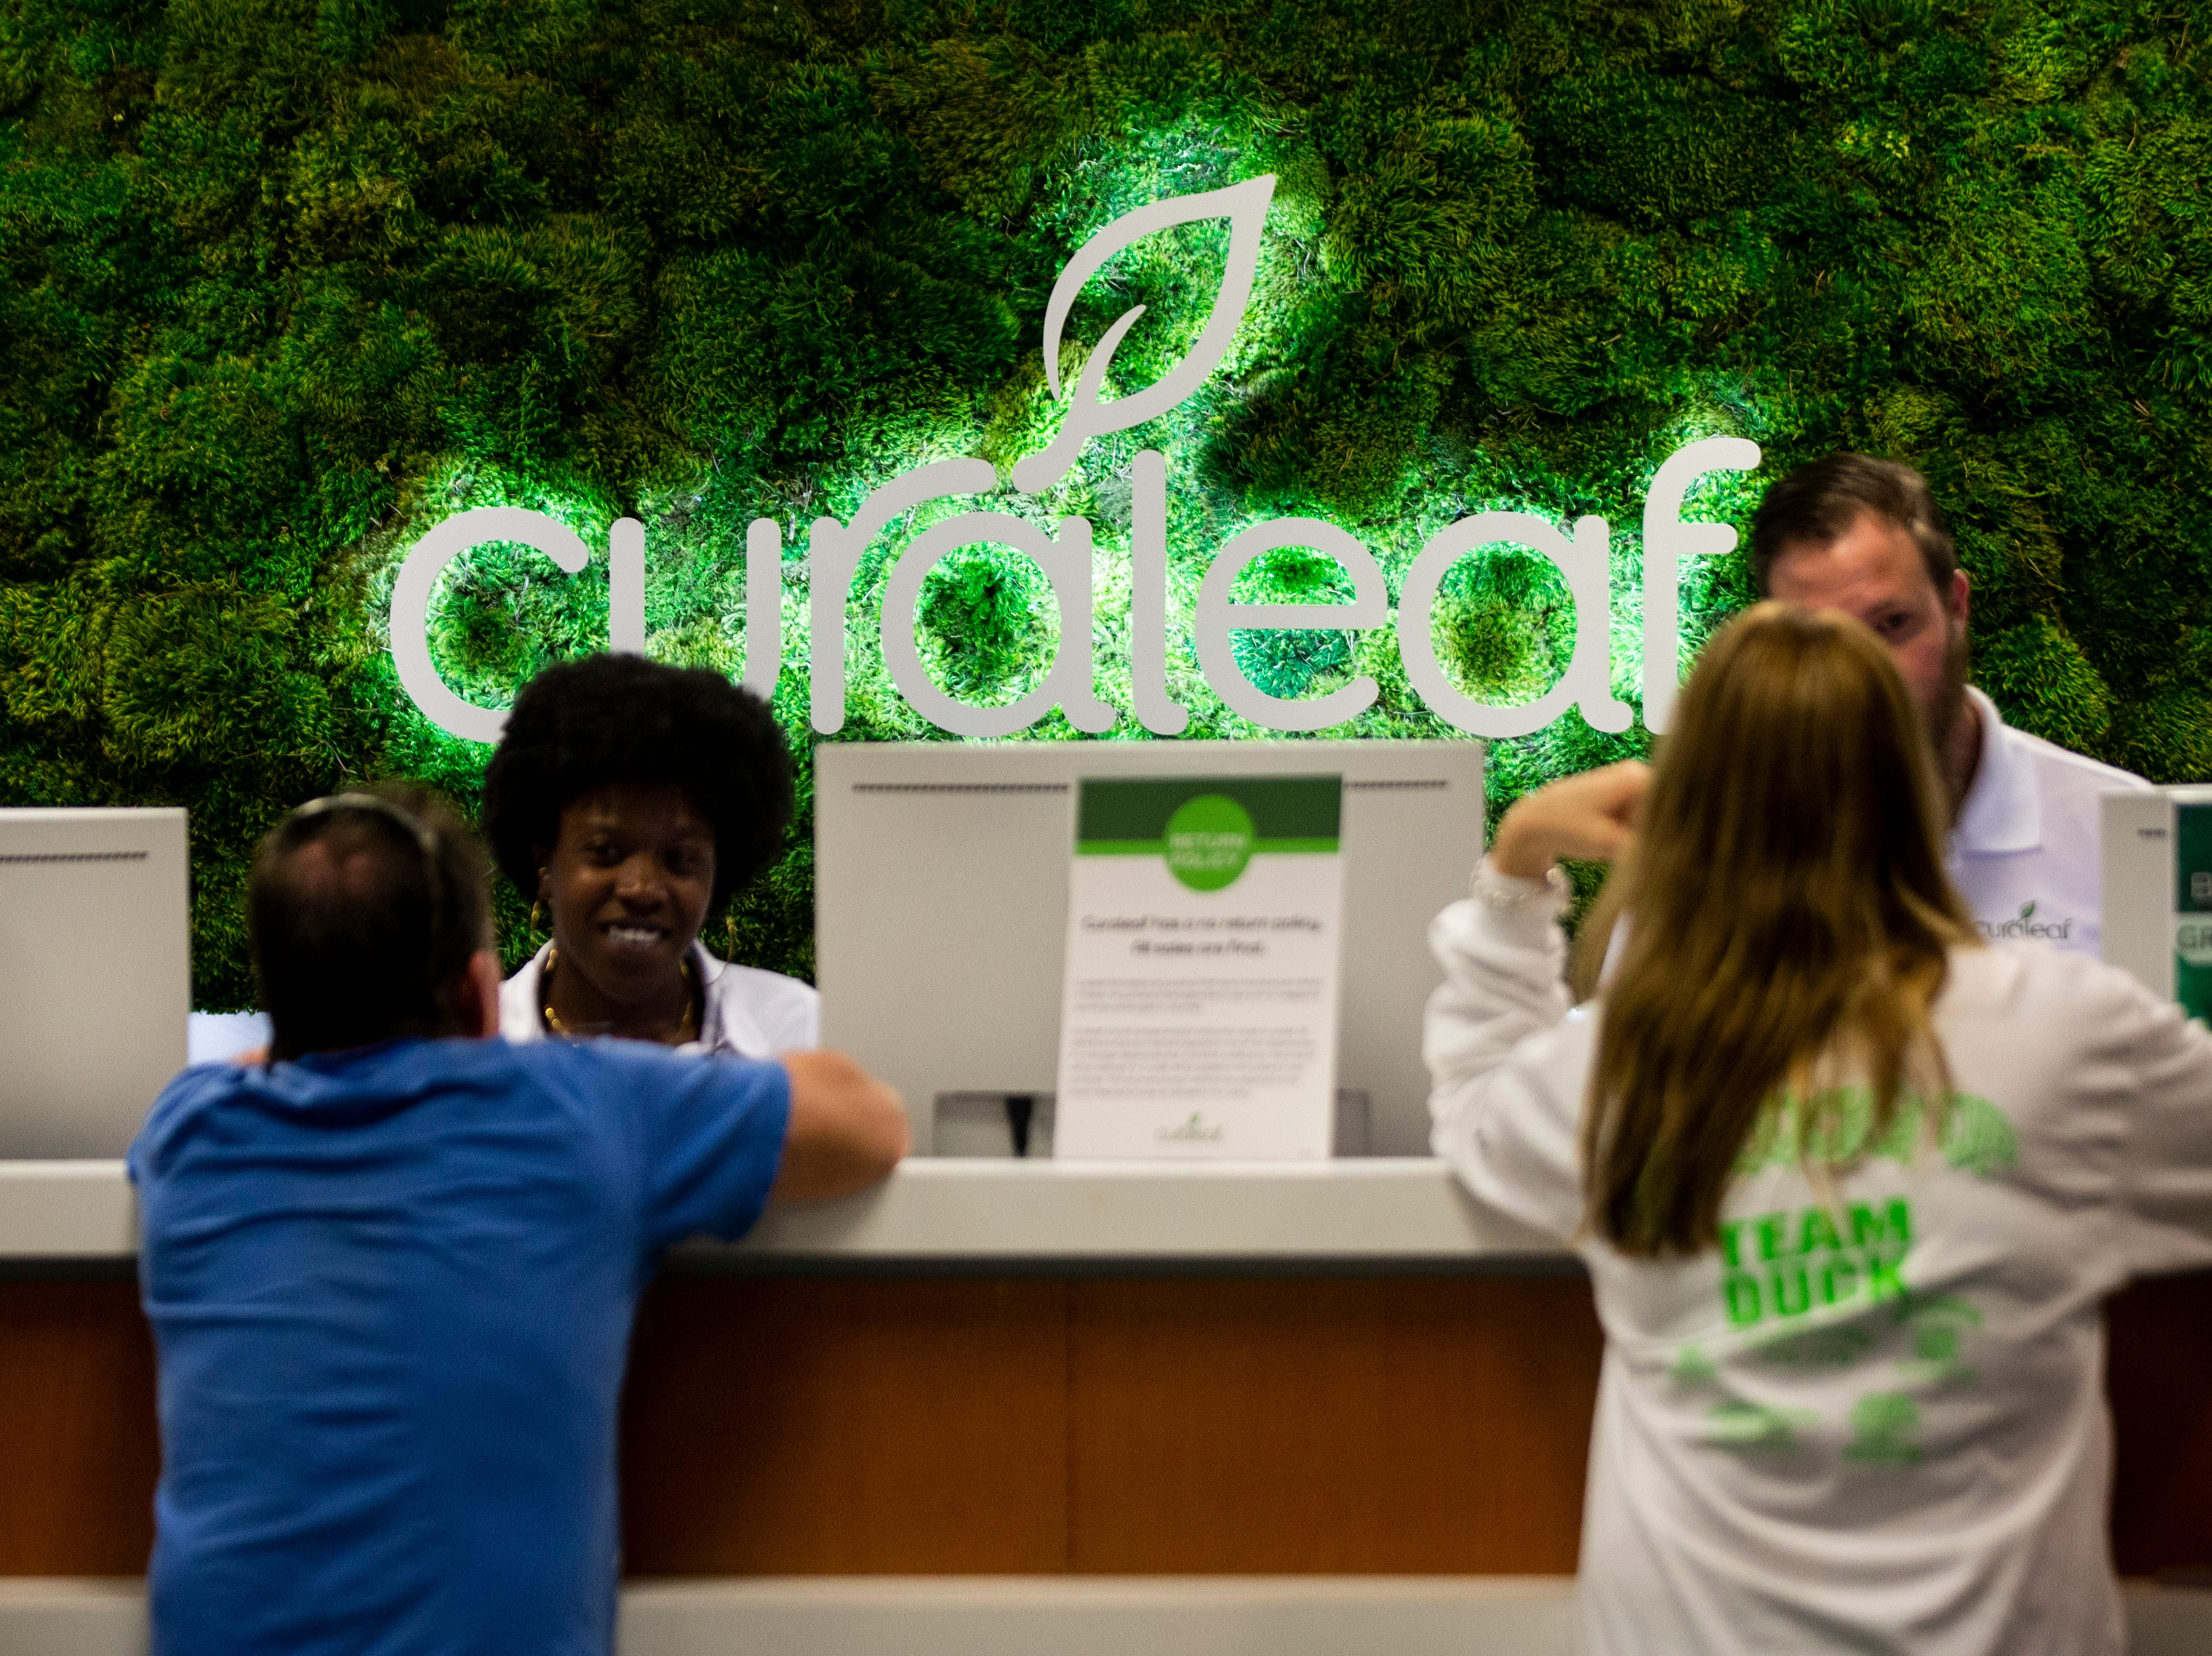 Curaleaf employees help customers at the counter during the grand opening of the Curaleaf medical marijuana dispensary in Bonita Springs on Thursday, January 17, 2019. Curaleaf patients range in age from two years old to 102.